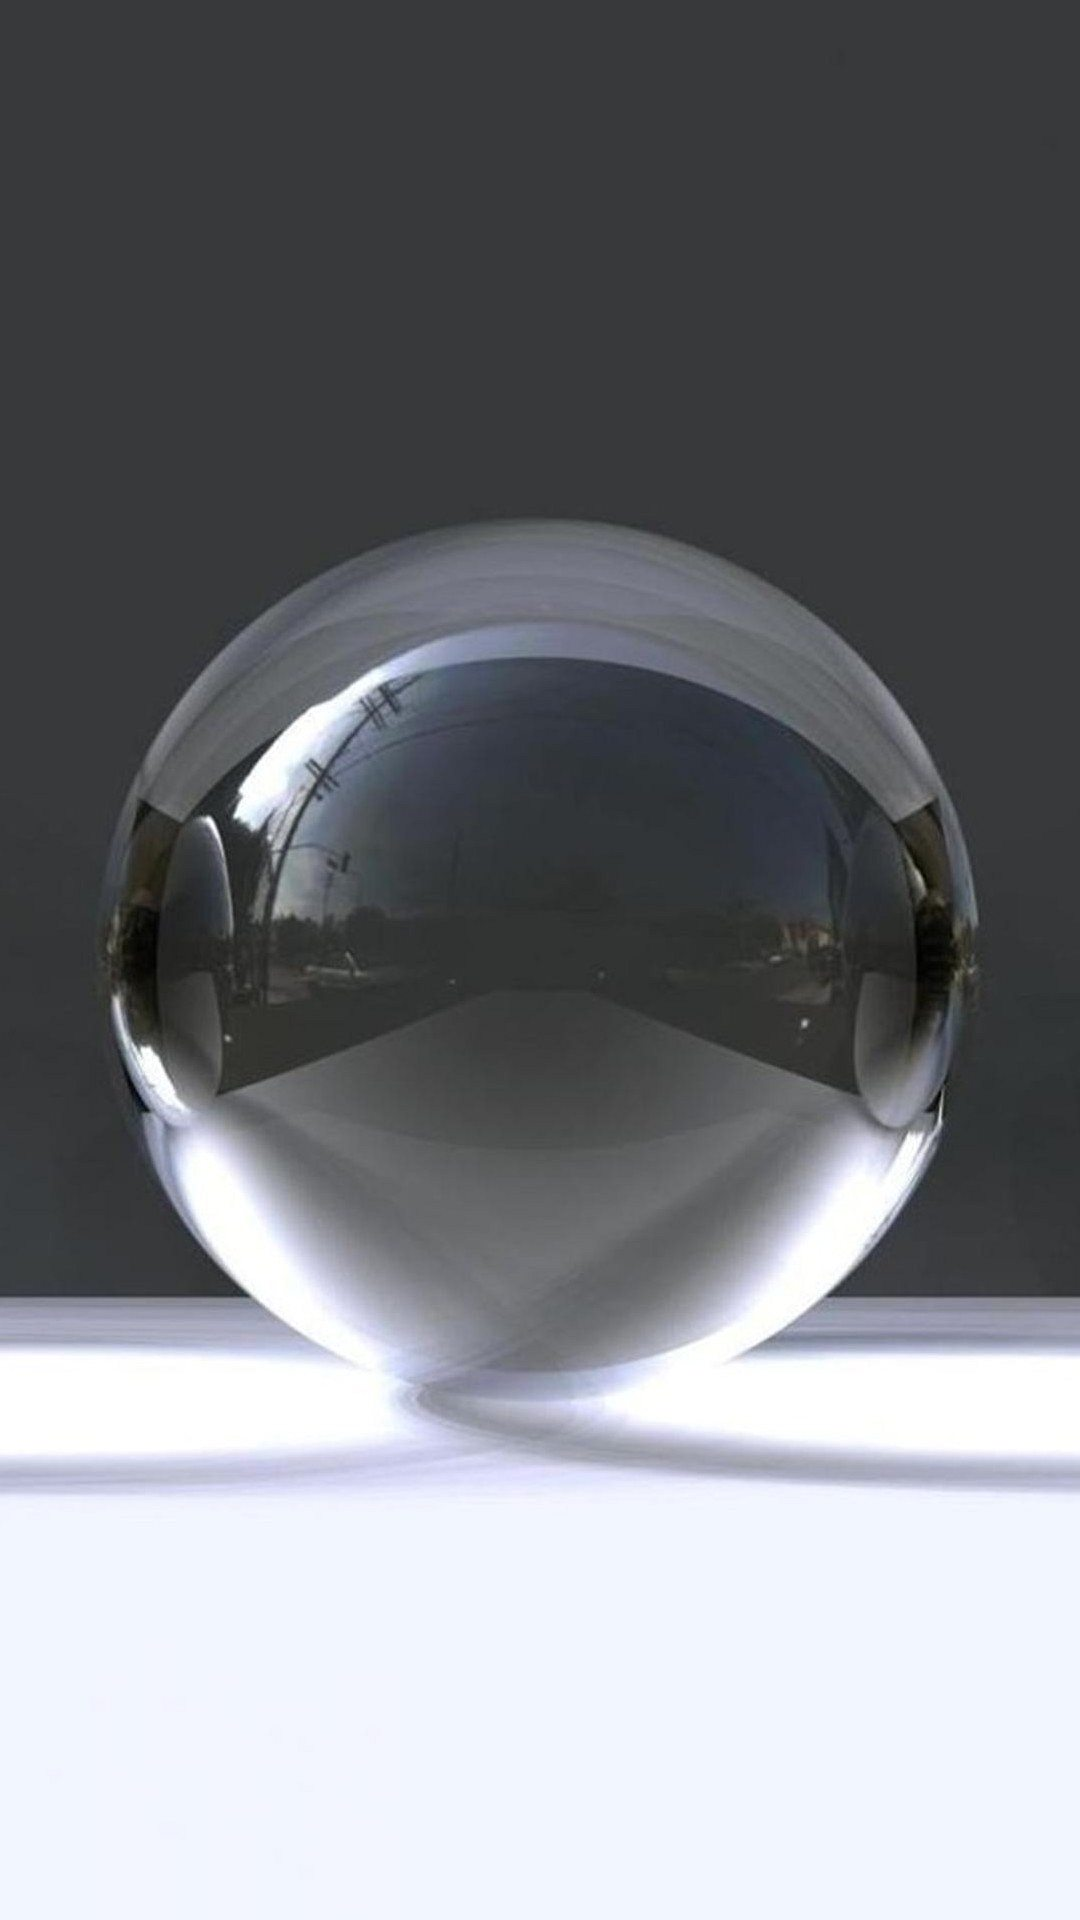 Glass sphere best htc one wallpapers free and easy to